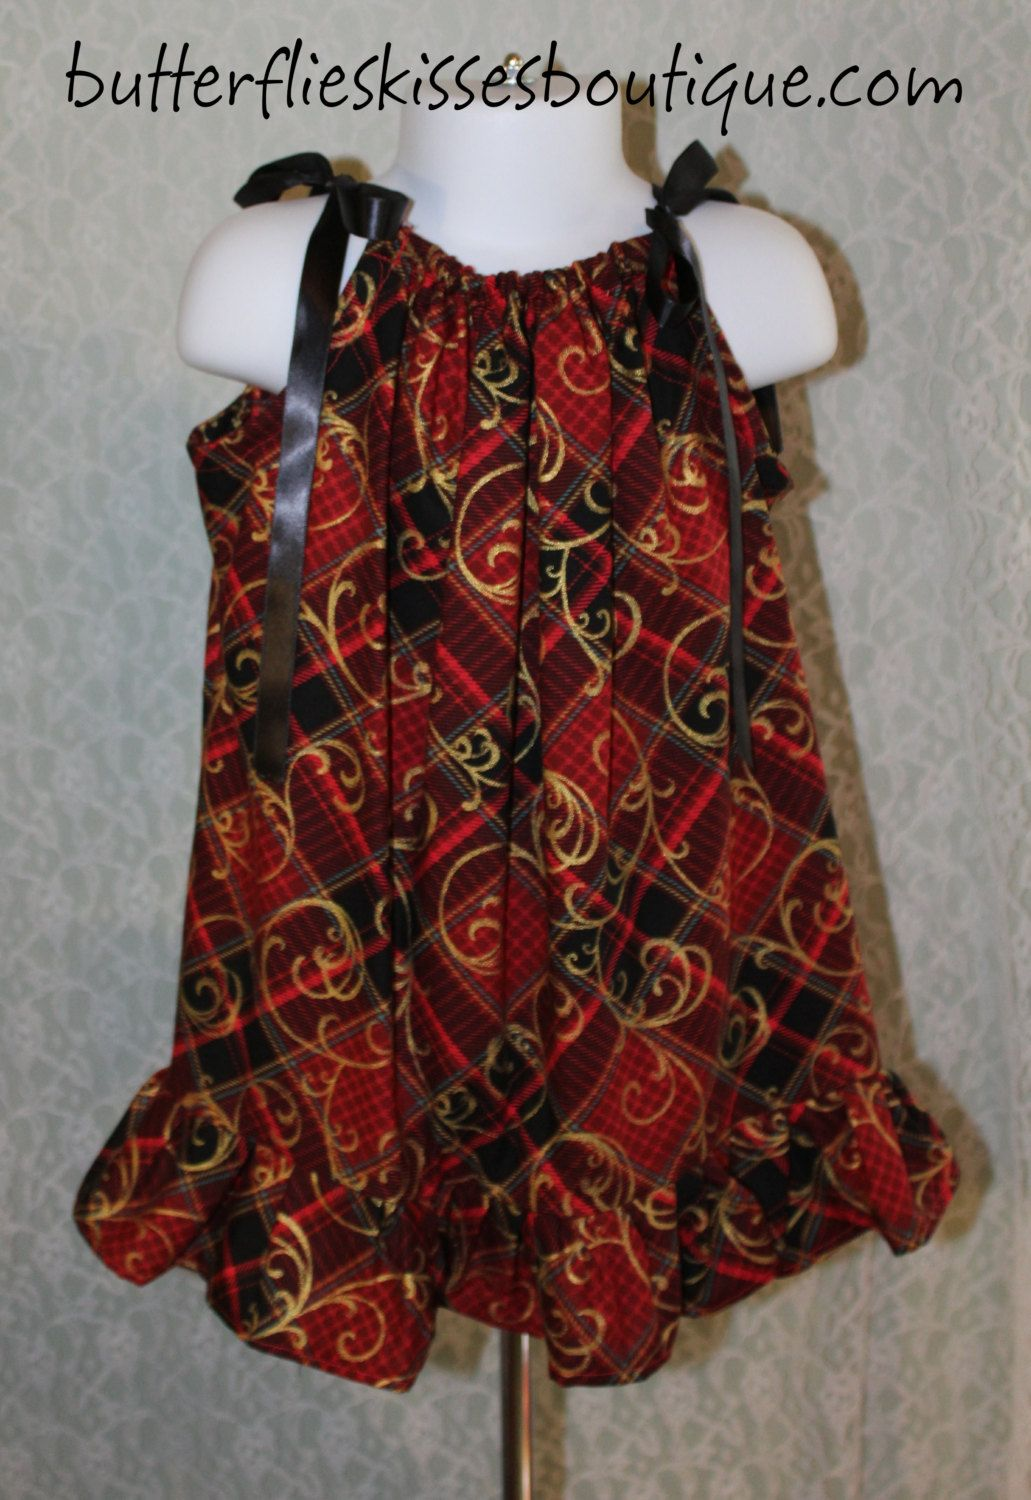 9a848d330 Handmade Christmas dress size 2-3T girls toddlers babies red black and gold  free shipping ready to ship asap etsy kids childrens clothing